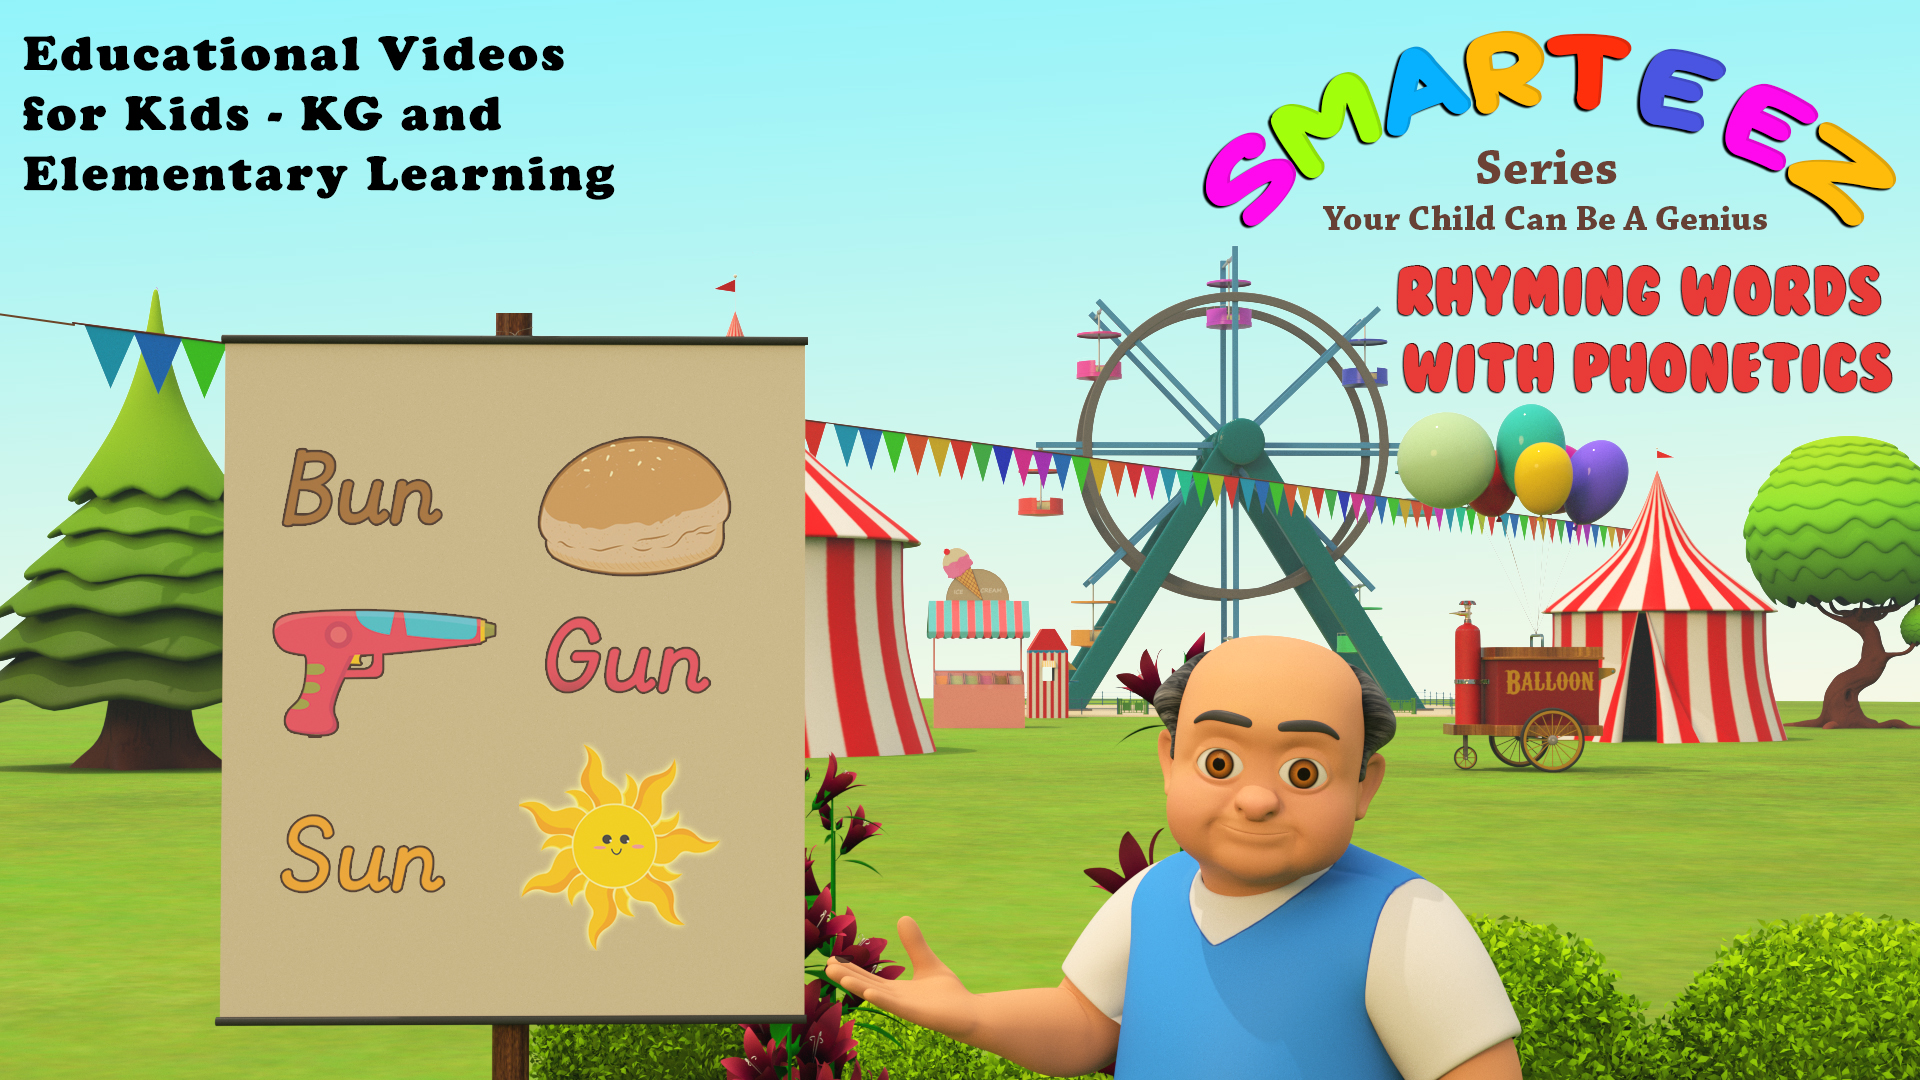 Smarteez Series - Educational Videos for Kids - KG and Elementary Learning on Amazon Prime Video UK